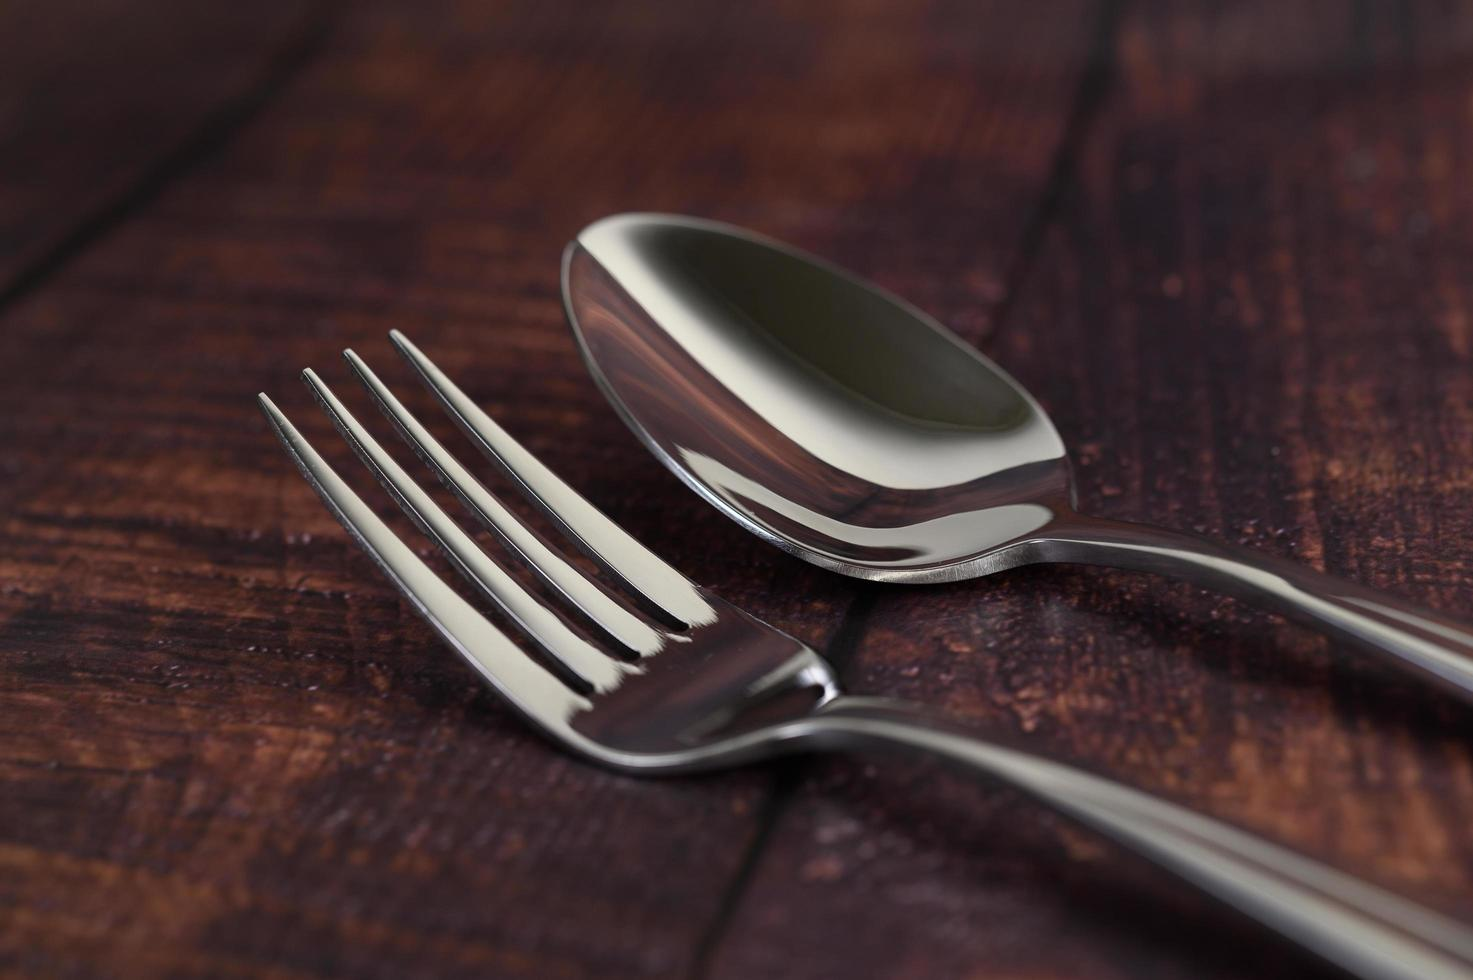 Stainless fork and spoon on a wooden table photo